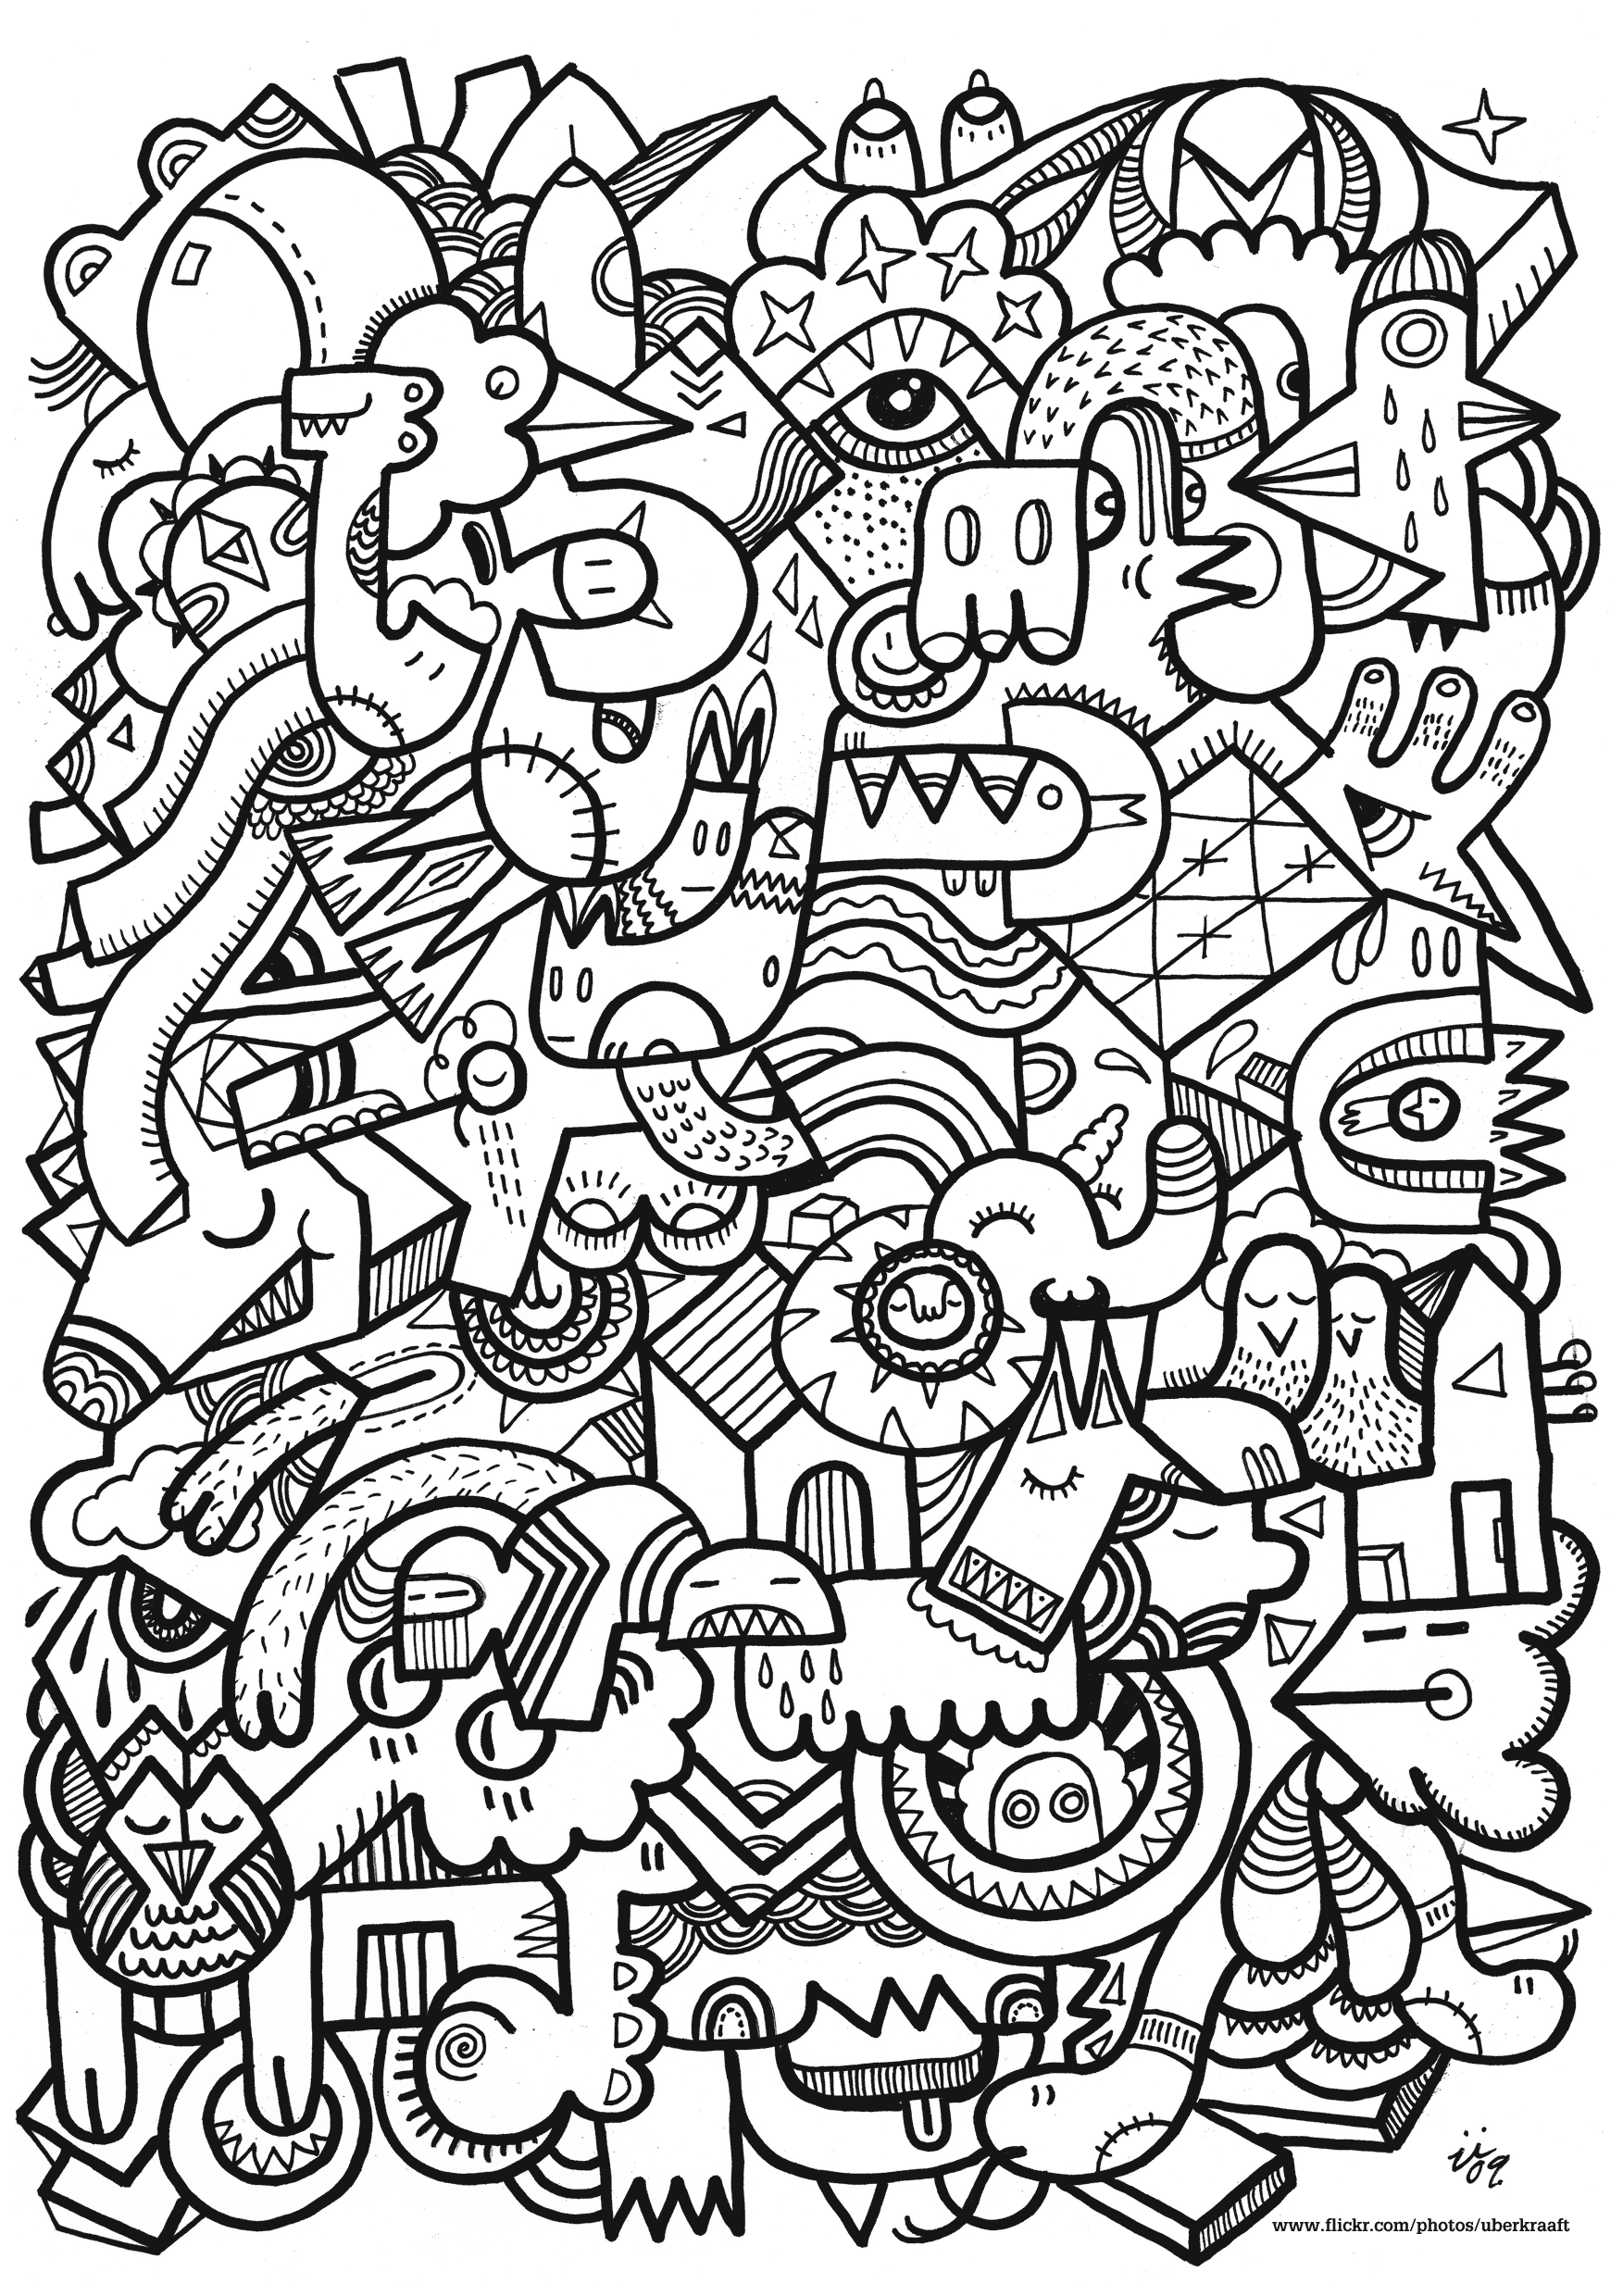 adults color childrens coloring books 20 attractive coloring pages for adults we need fun books color childrens adults coloring